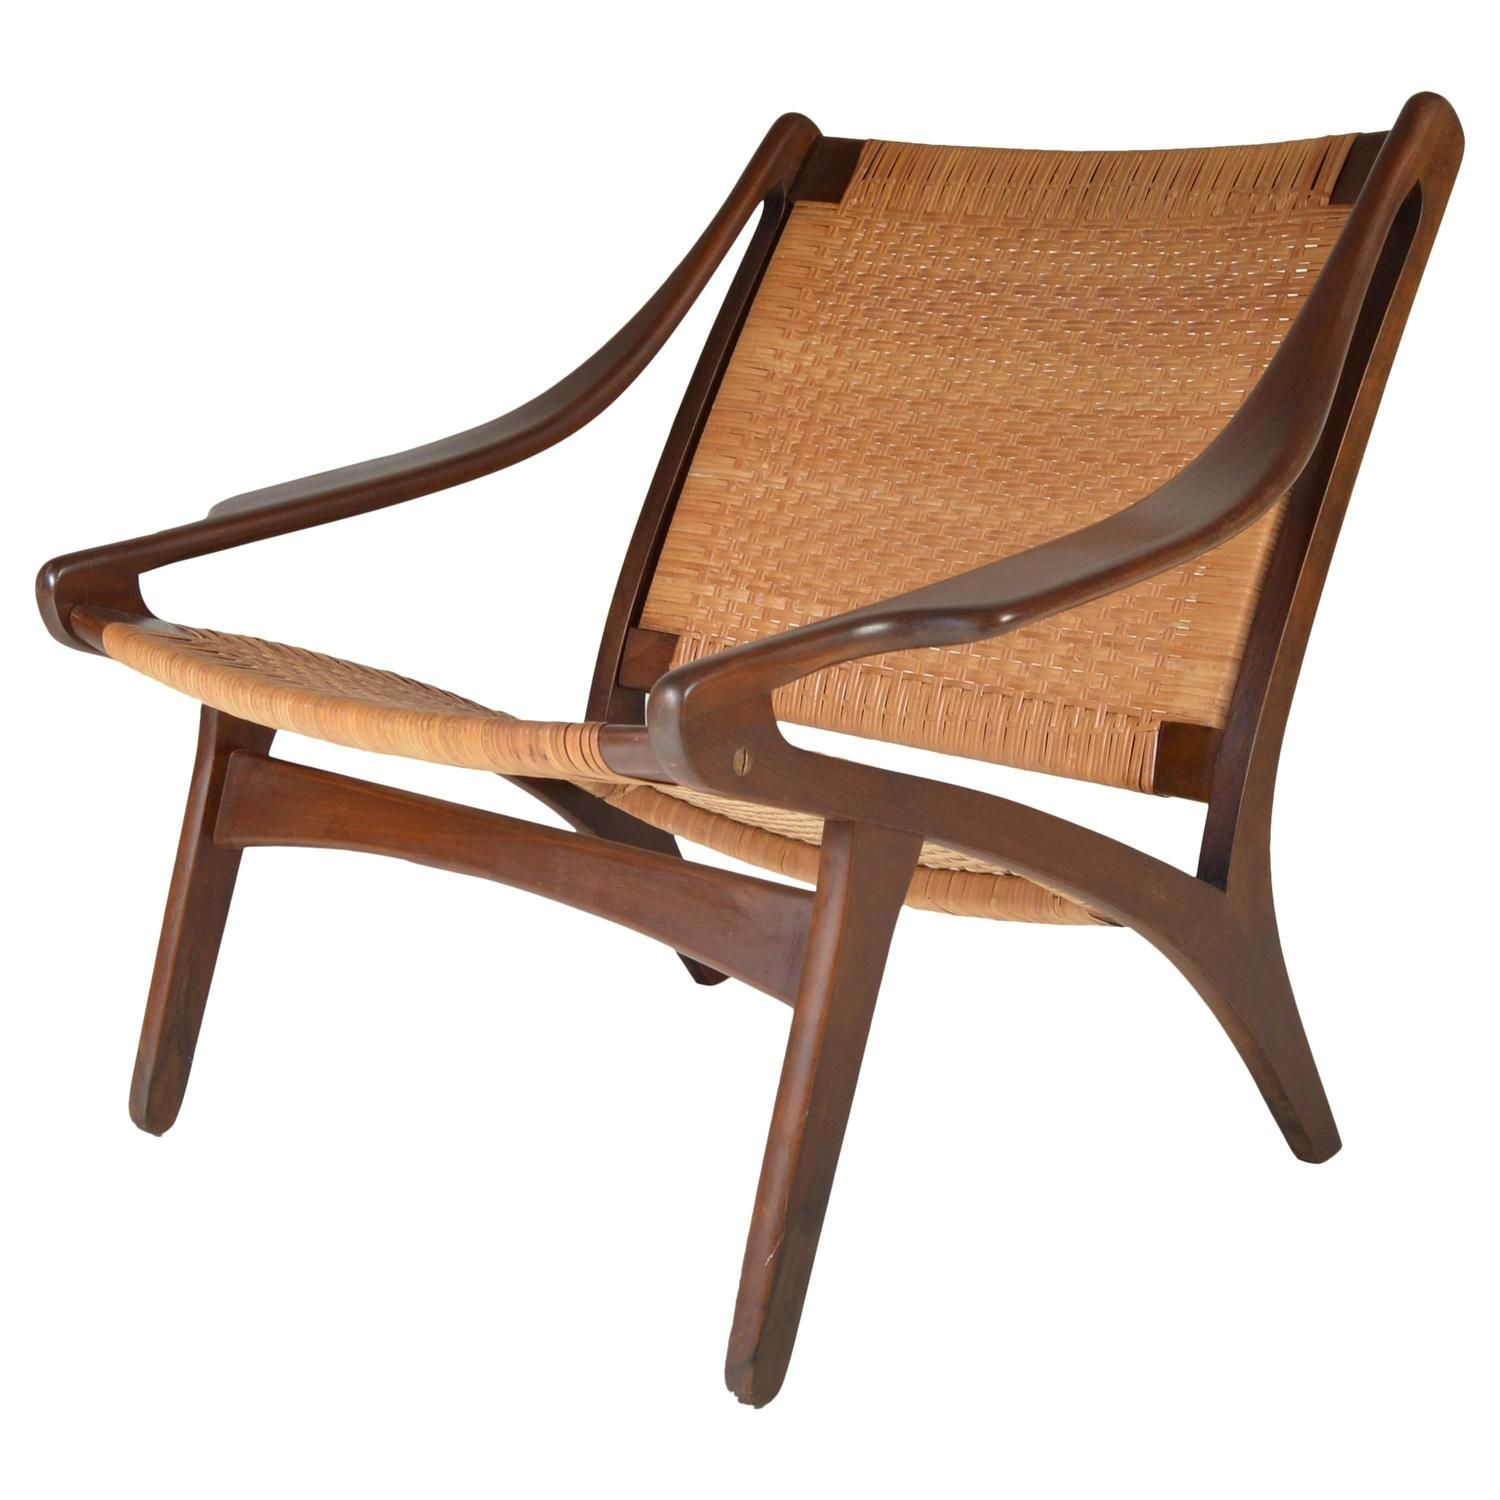 Early IB Kofod Larsen Walnut and Cane Easy Chair | From a unique collection of antique and modern chairs at https://www.1stdibs.com/furniture/seating/chairs/